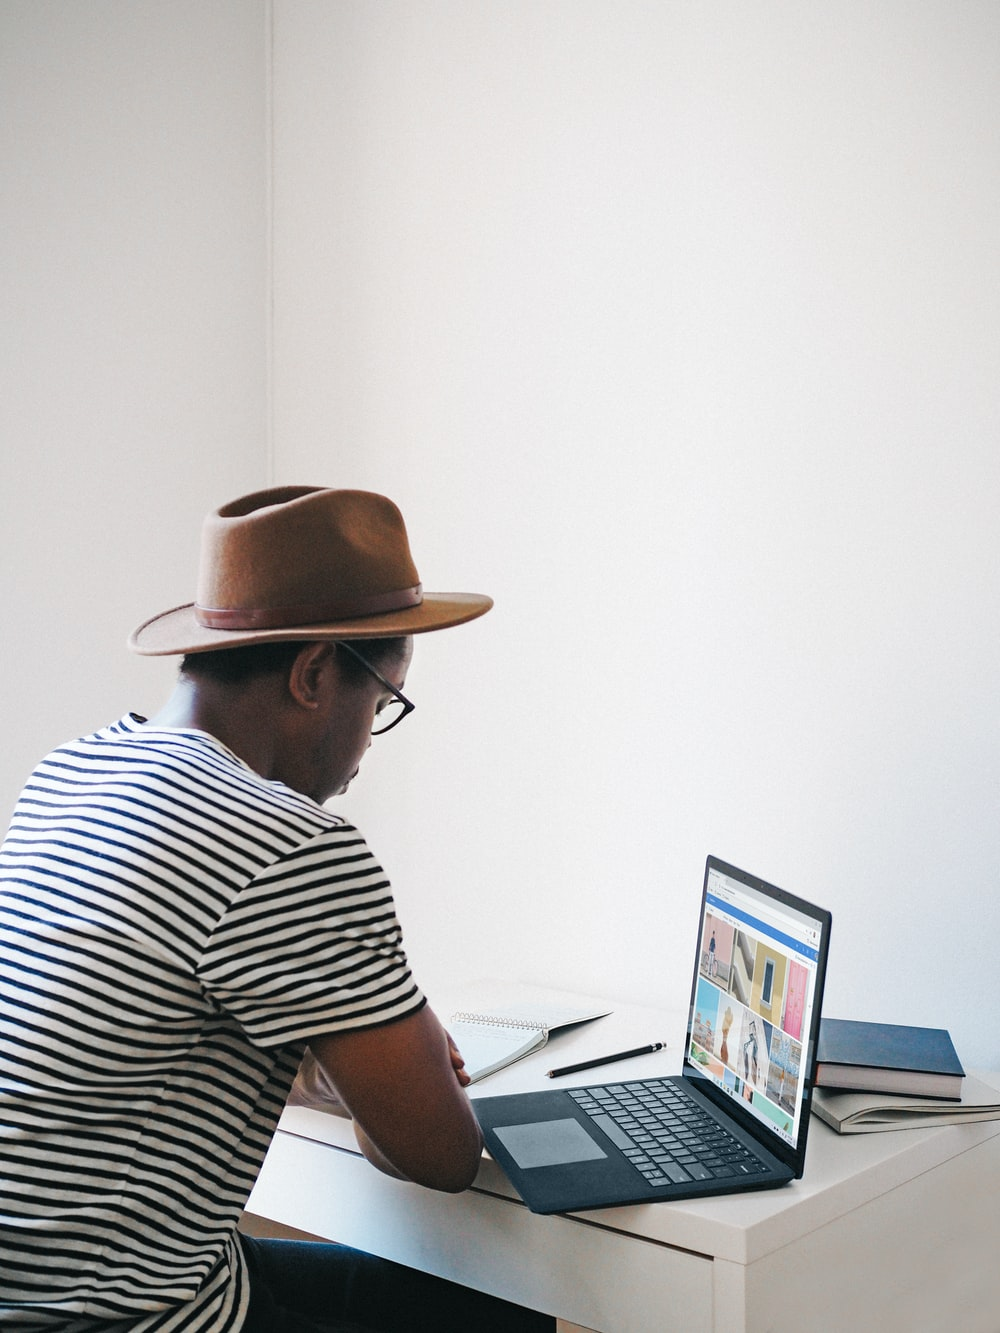 man in white and black stripe shirt wearing brown hat sitting on chair using a Microsoft surface cobalt laptop